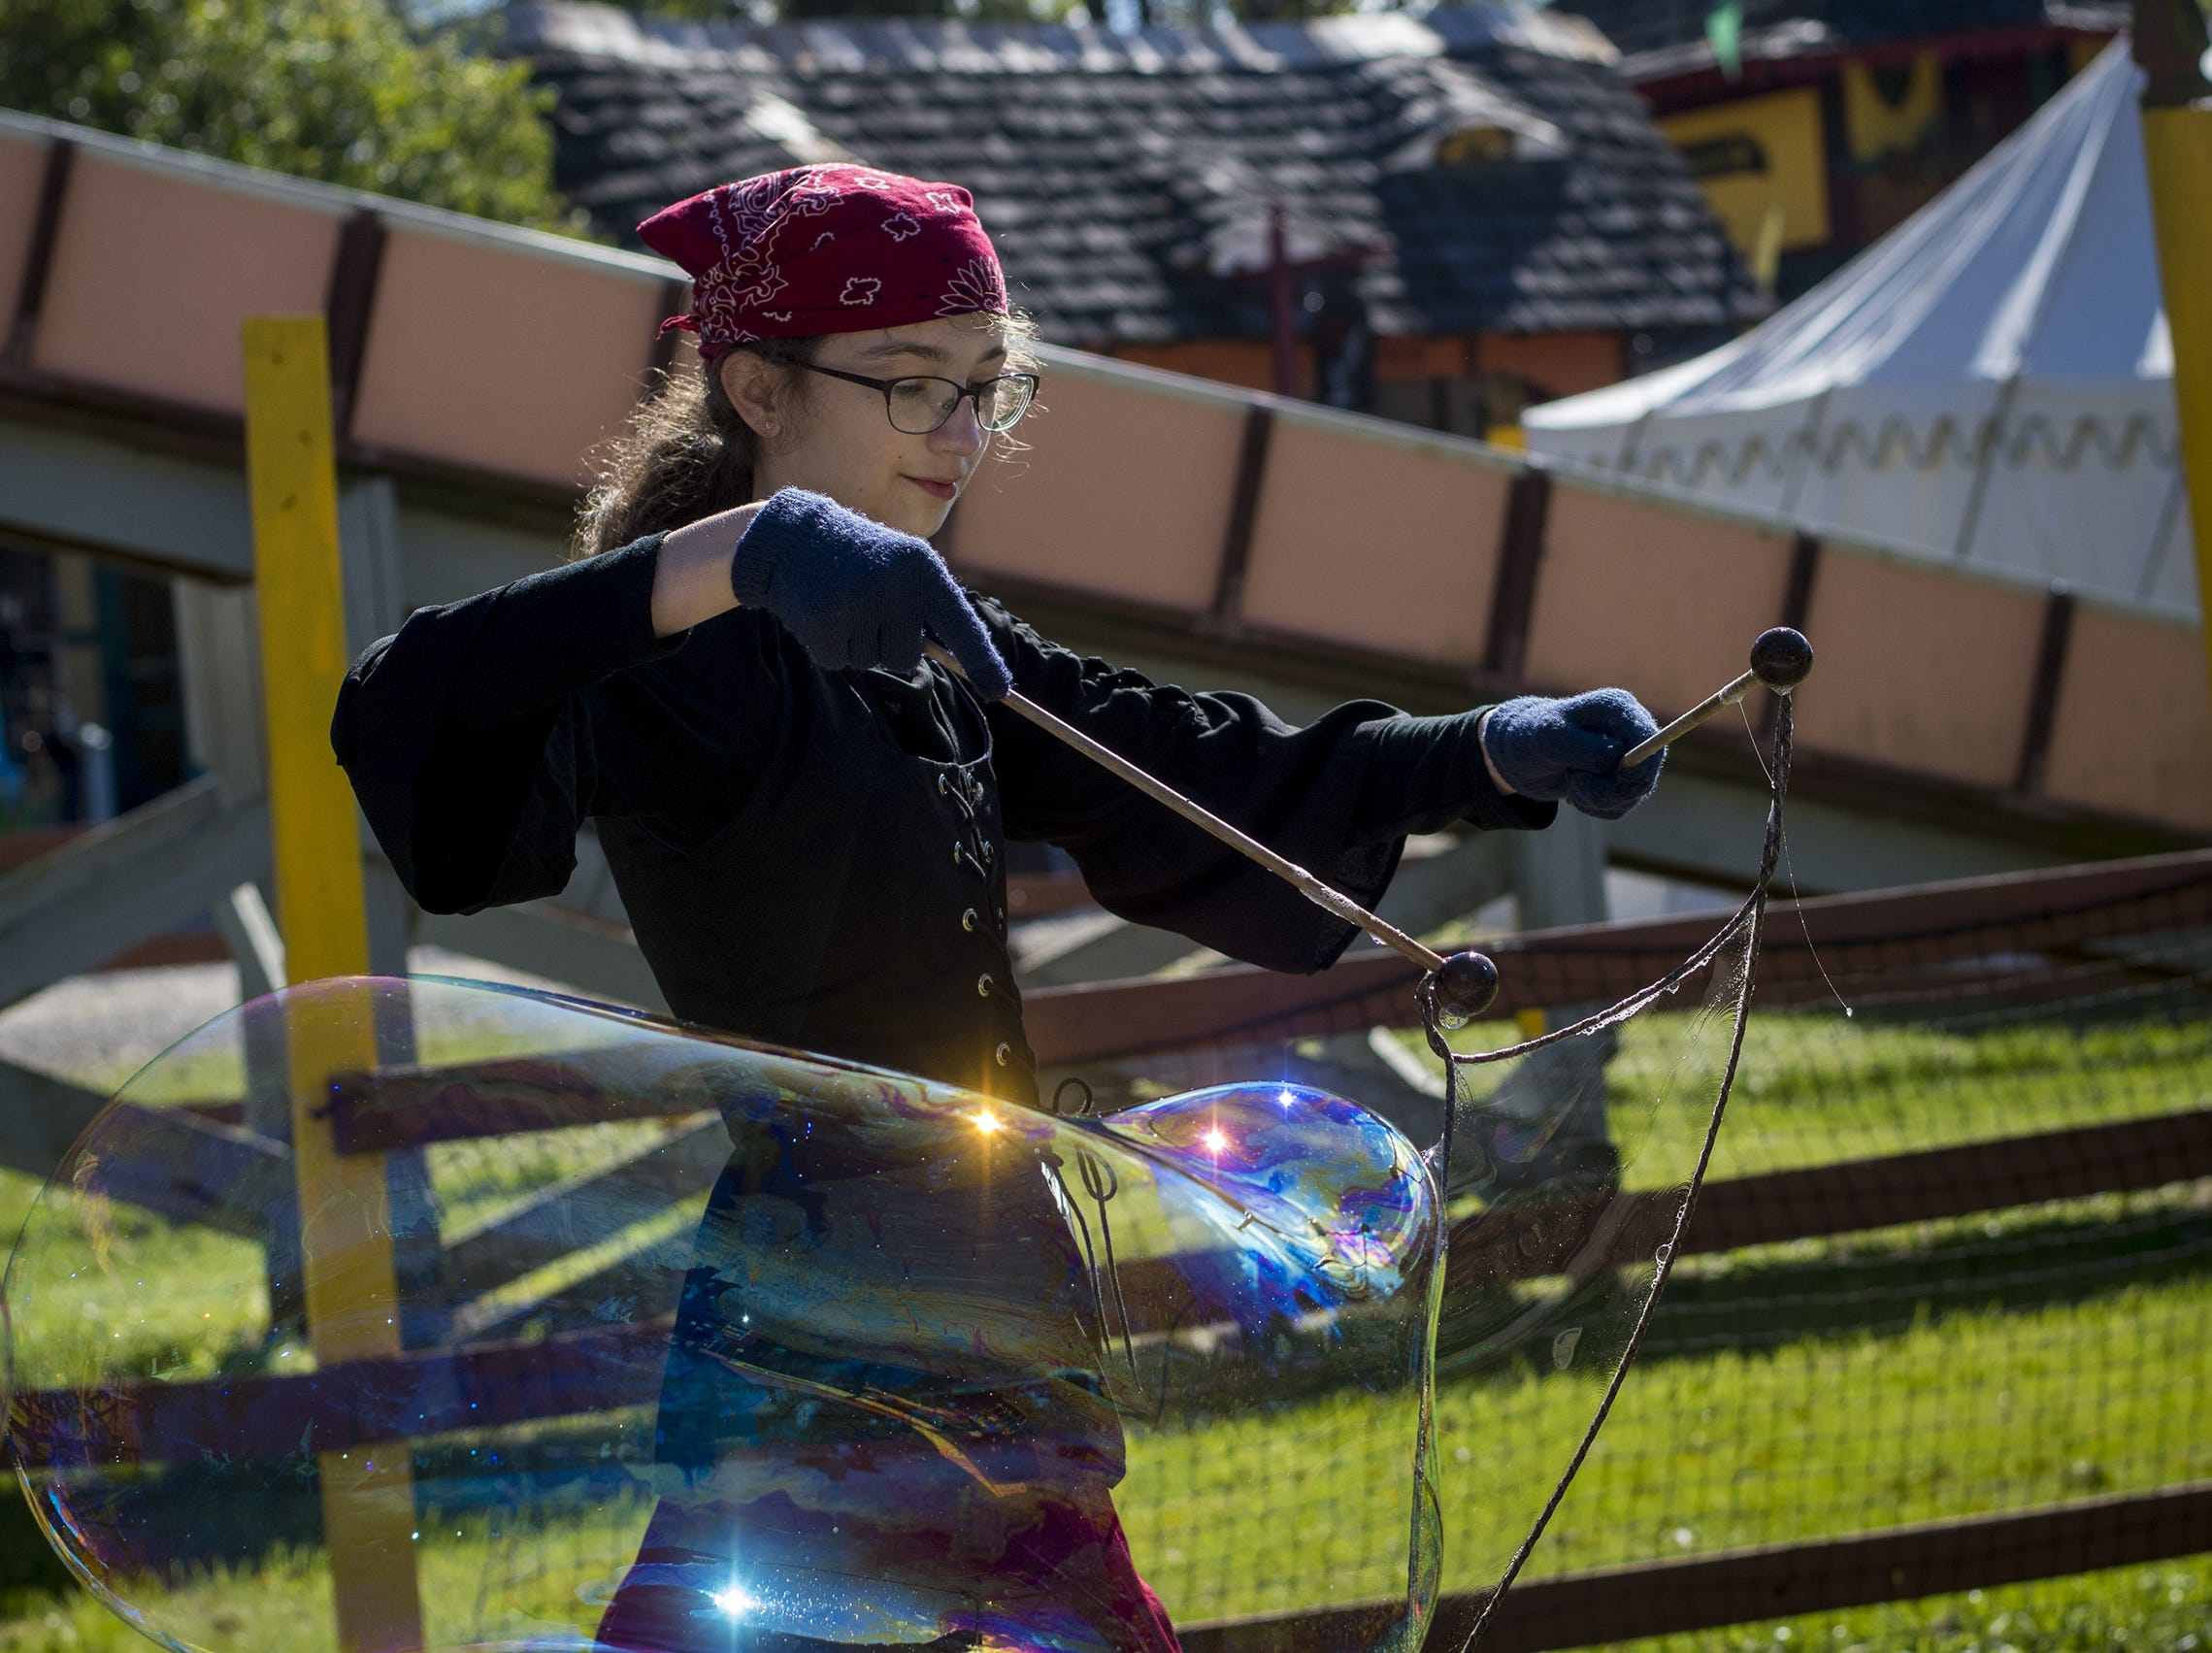 Isabel Voyd of Greenfield make giant bubbles during Romance Weekend at the Ohio Renaissance Festival Sunday, October 21, 2018 in Waynesville, Ohio.